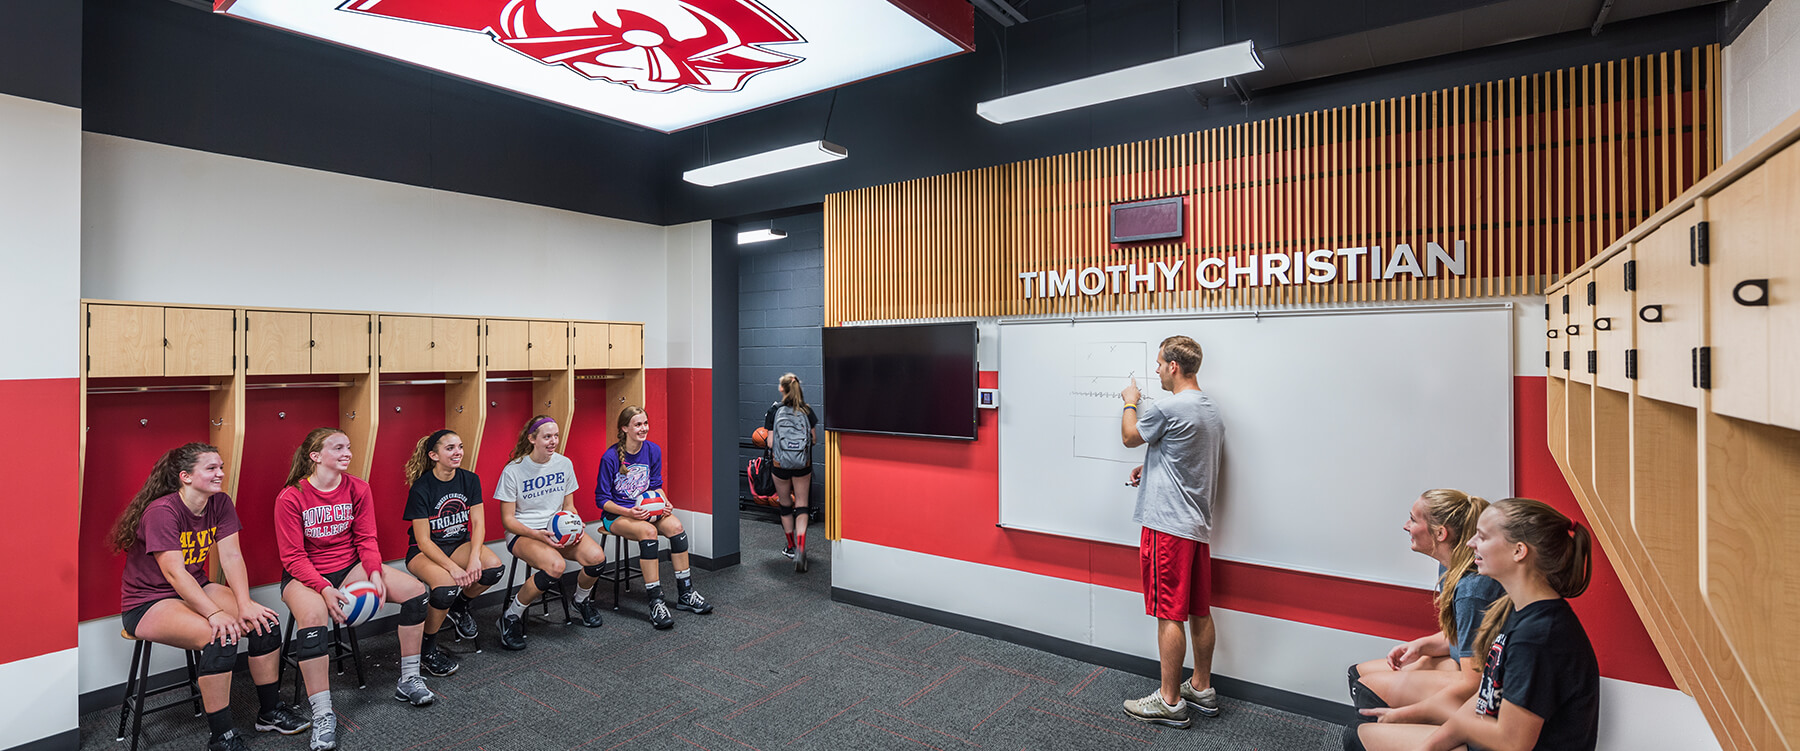 Timothy Christian Middle School Locker room team meeting